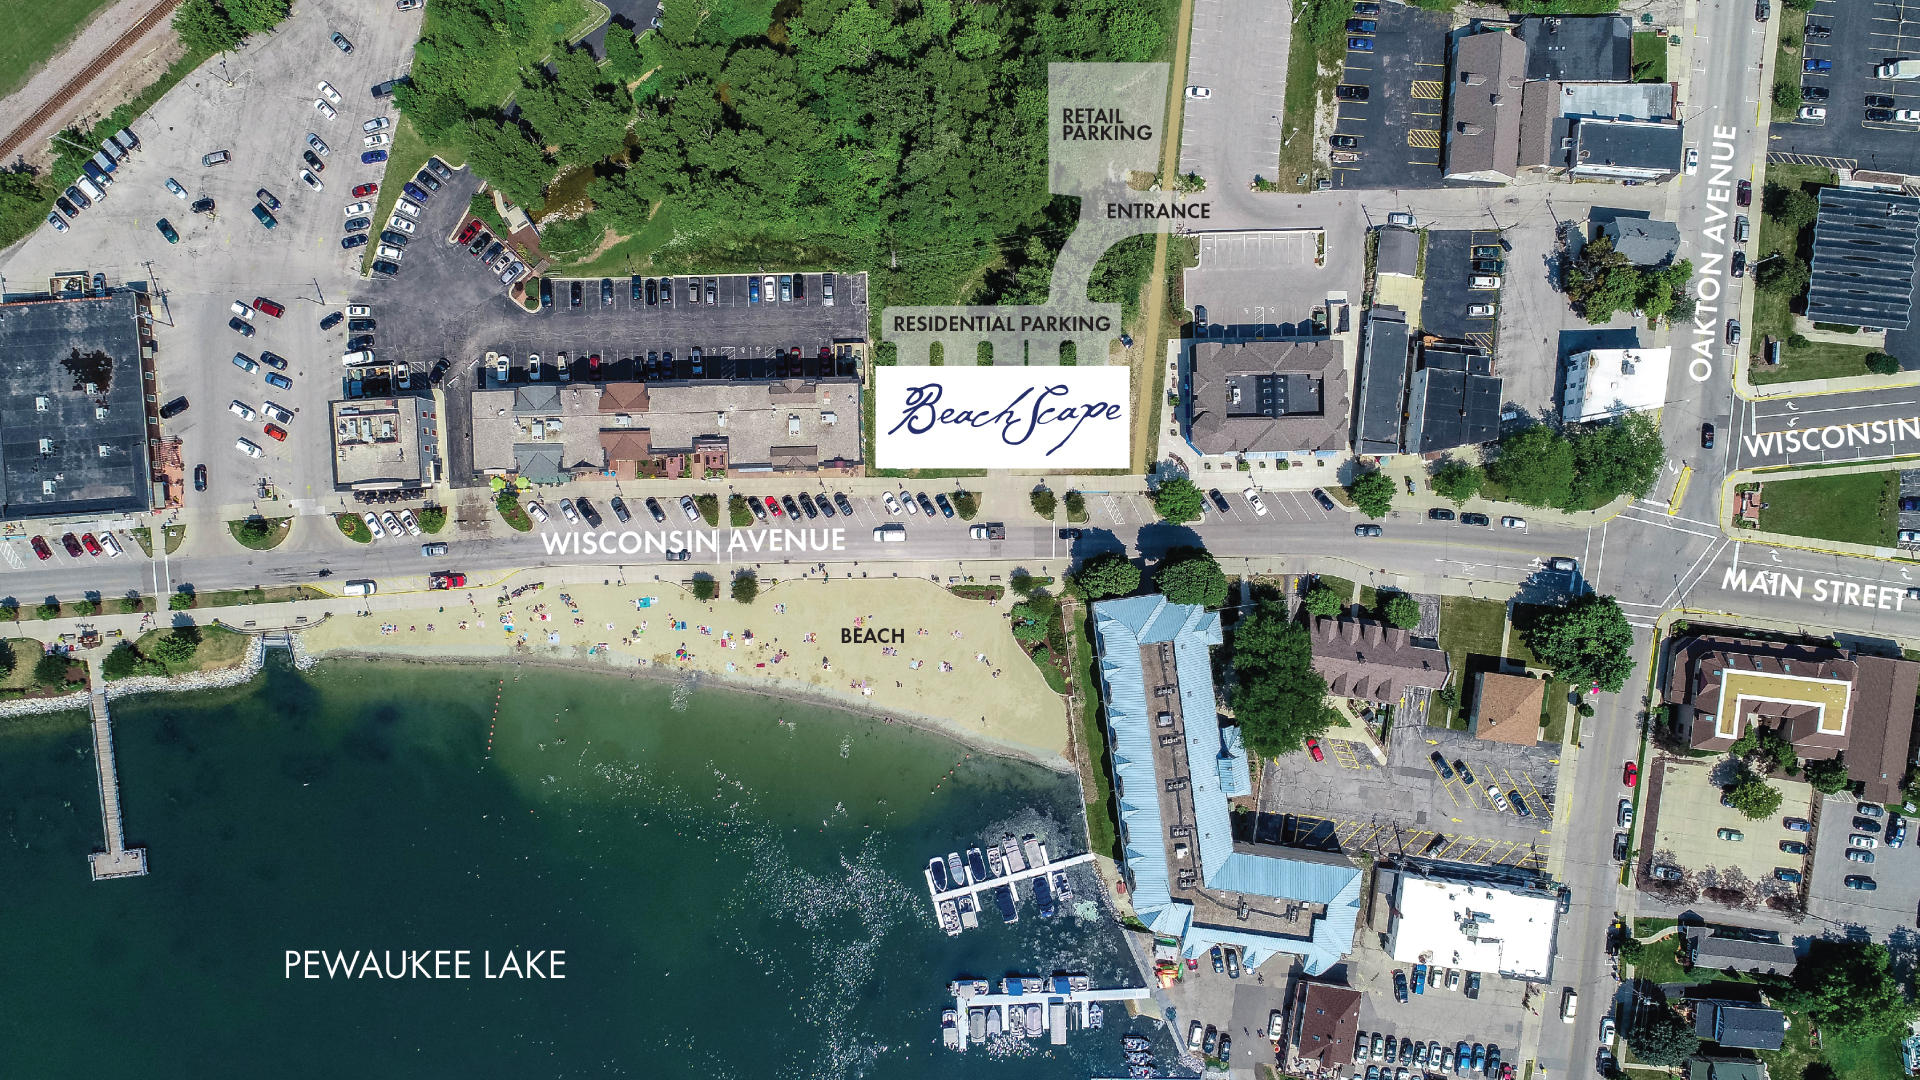 145 Wisconsin Ave, Pewaukee, Wisconsin 53072, 3 Bedrooms Bedrooms, 7 Rooms Rooms,3 BathroomsBathrooms,Condominiums,For Sale,Wisconsin Ave,2,1616279